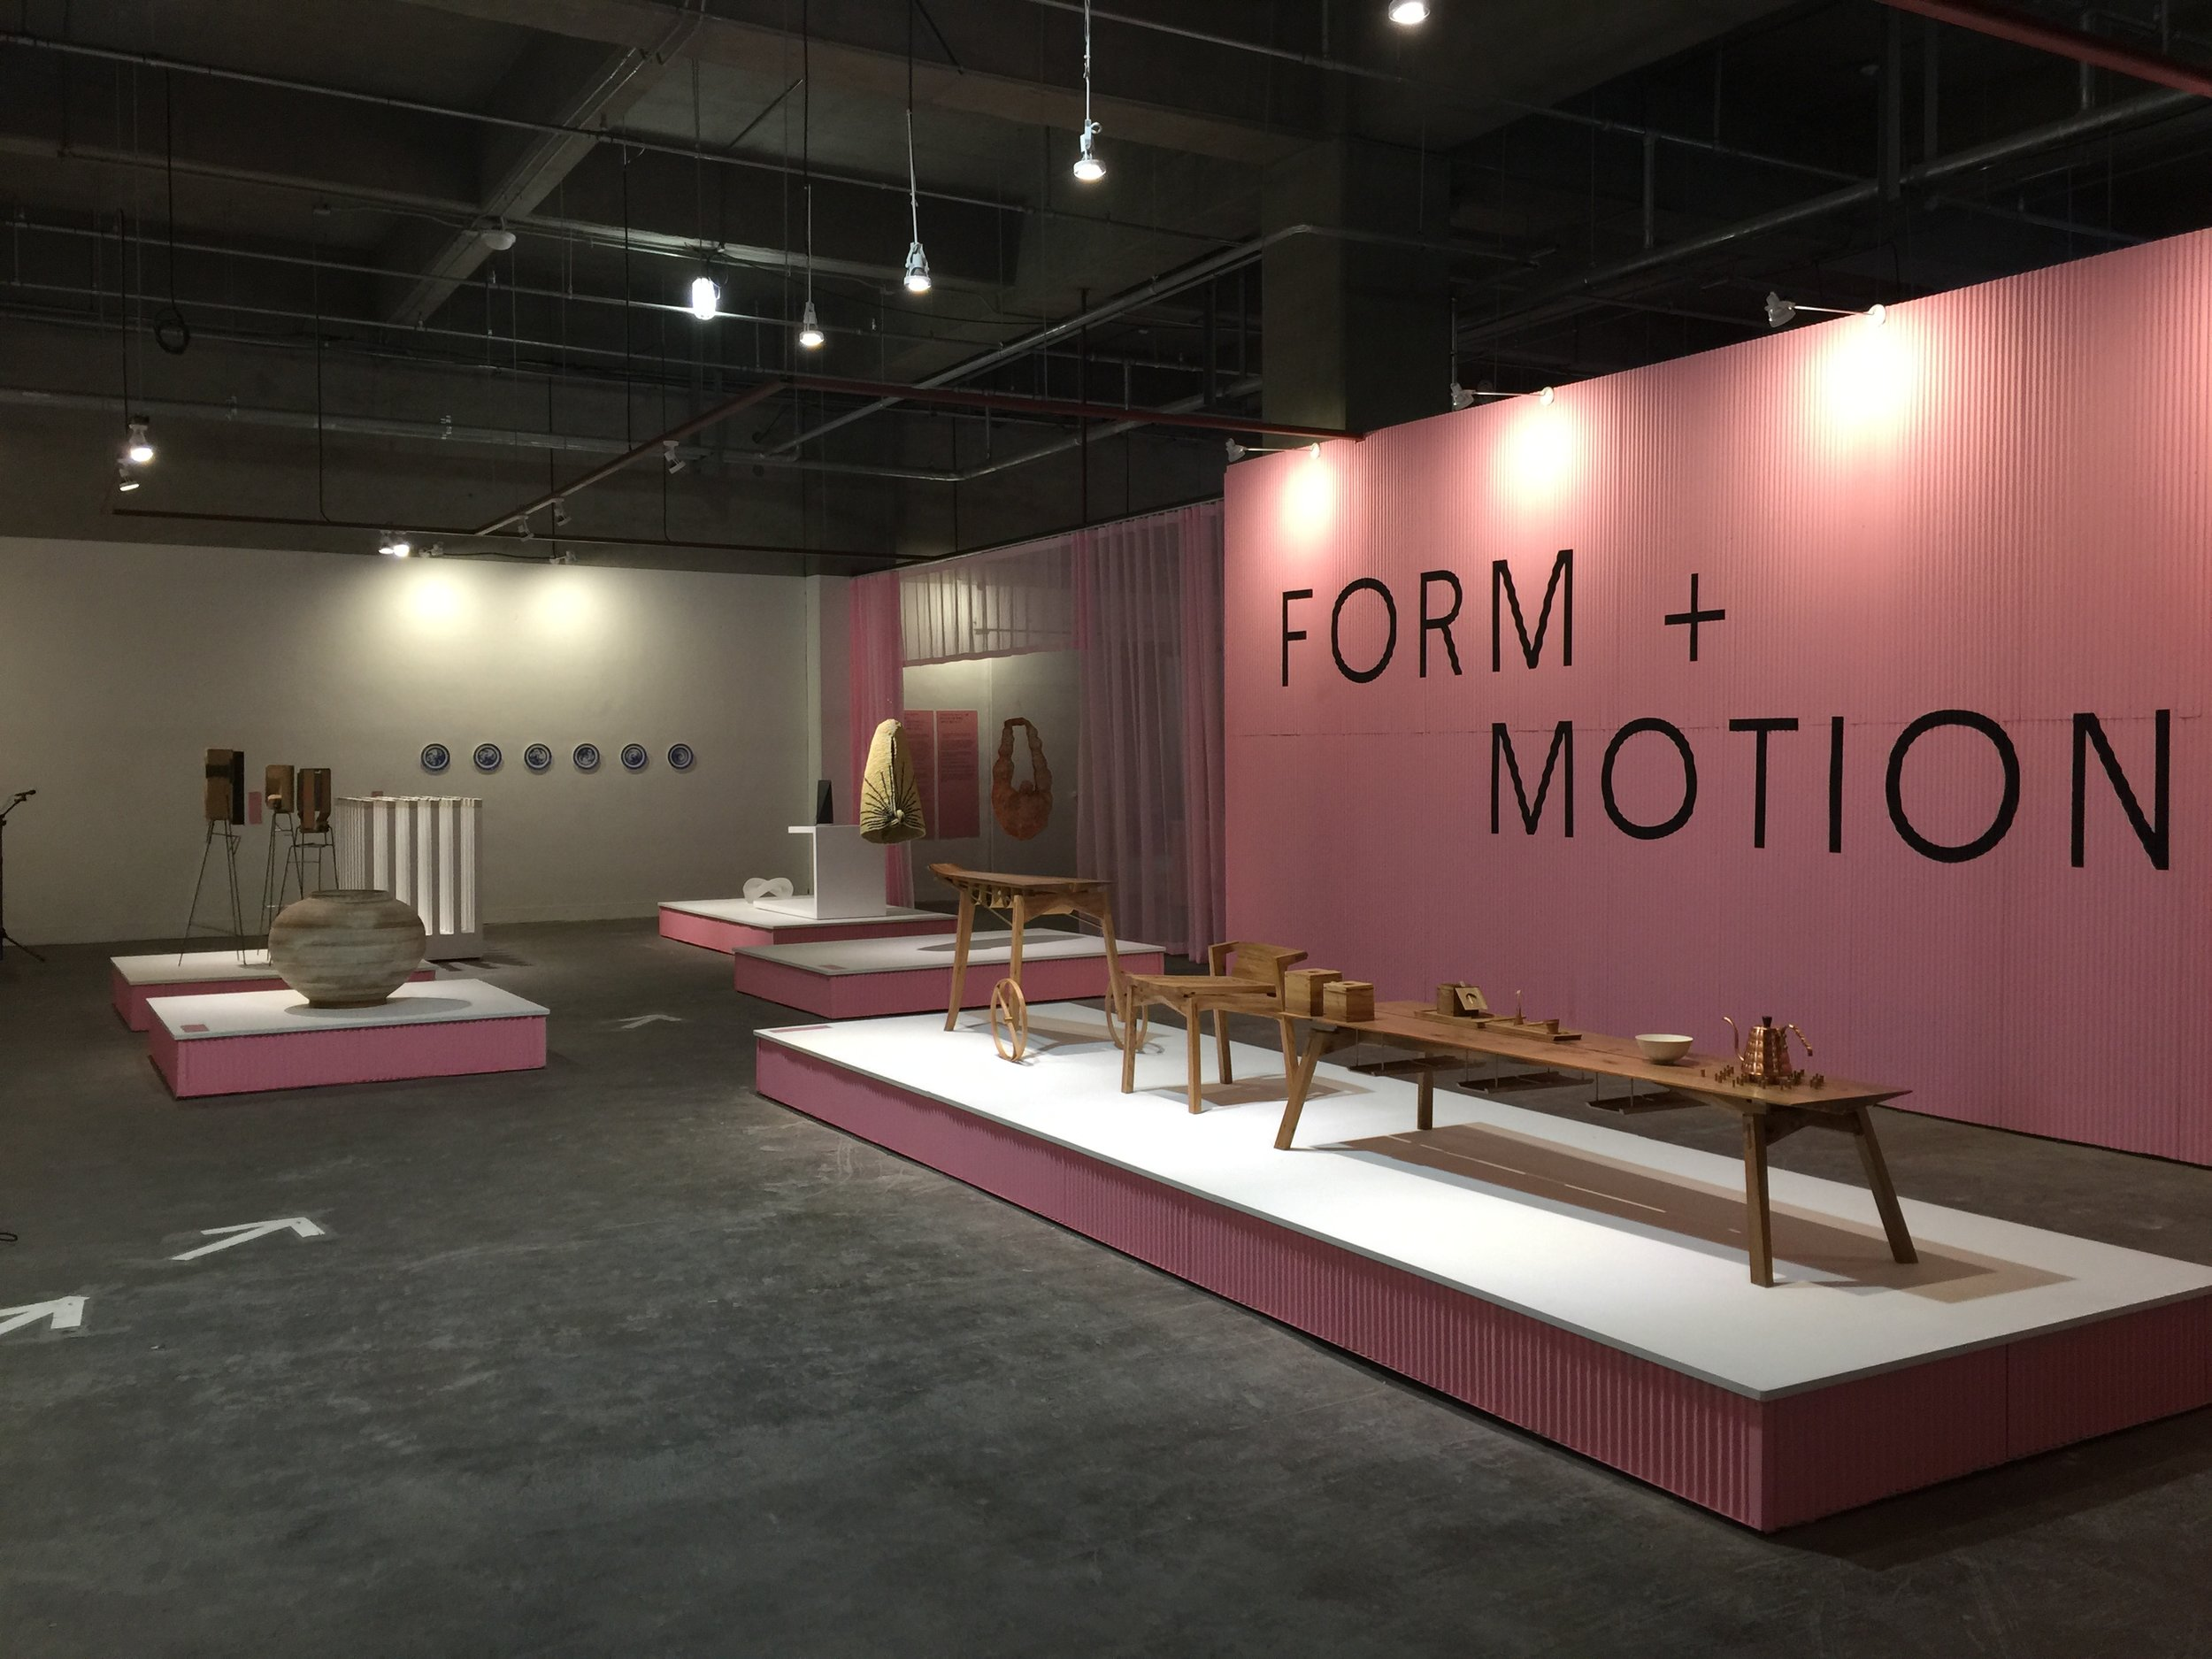 Form + Motion